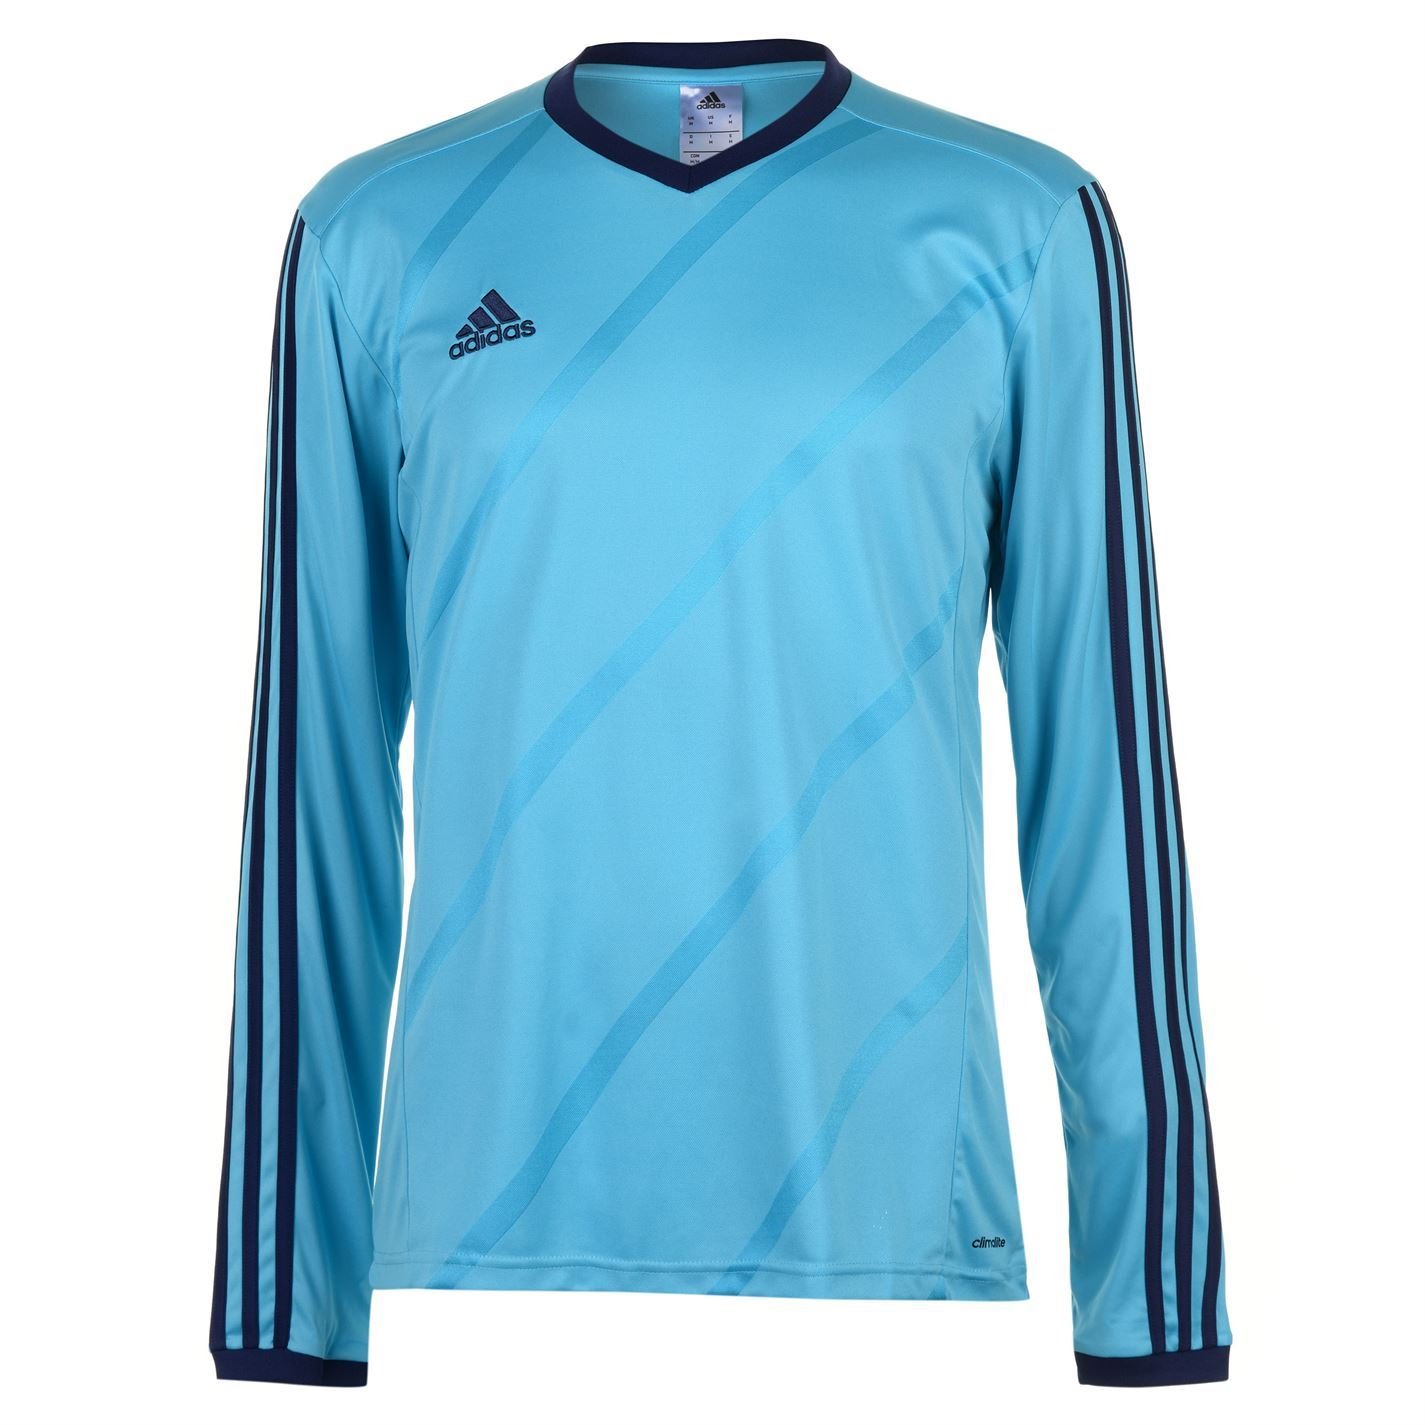 ... Adidas Tabela 14 Long Sleeve Football Jersey Mens football Shirt Top T- Shirt ... f01d858c6